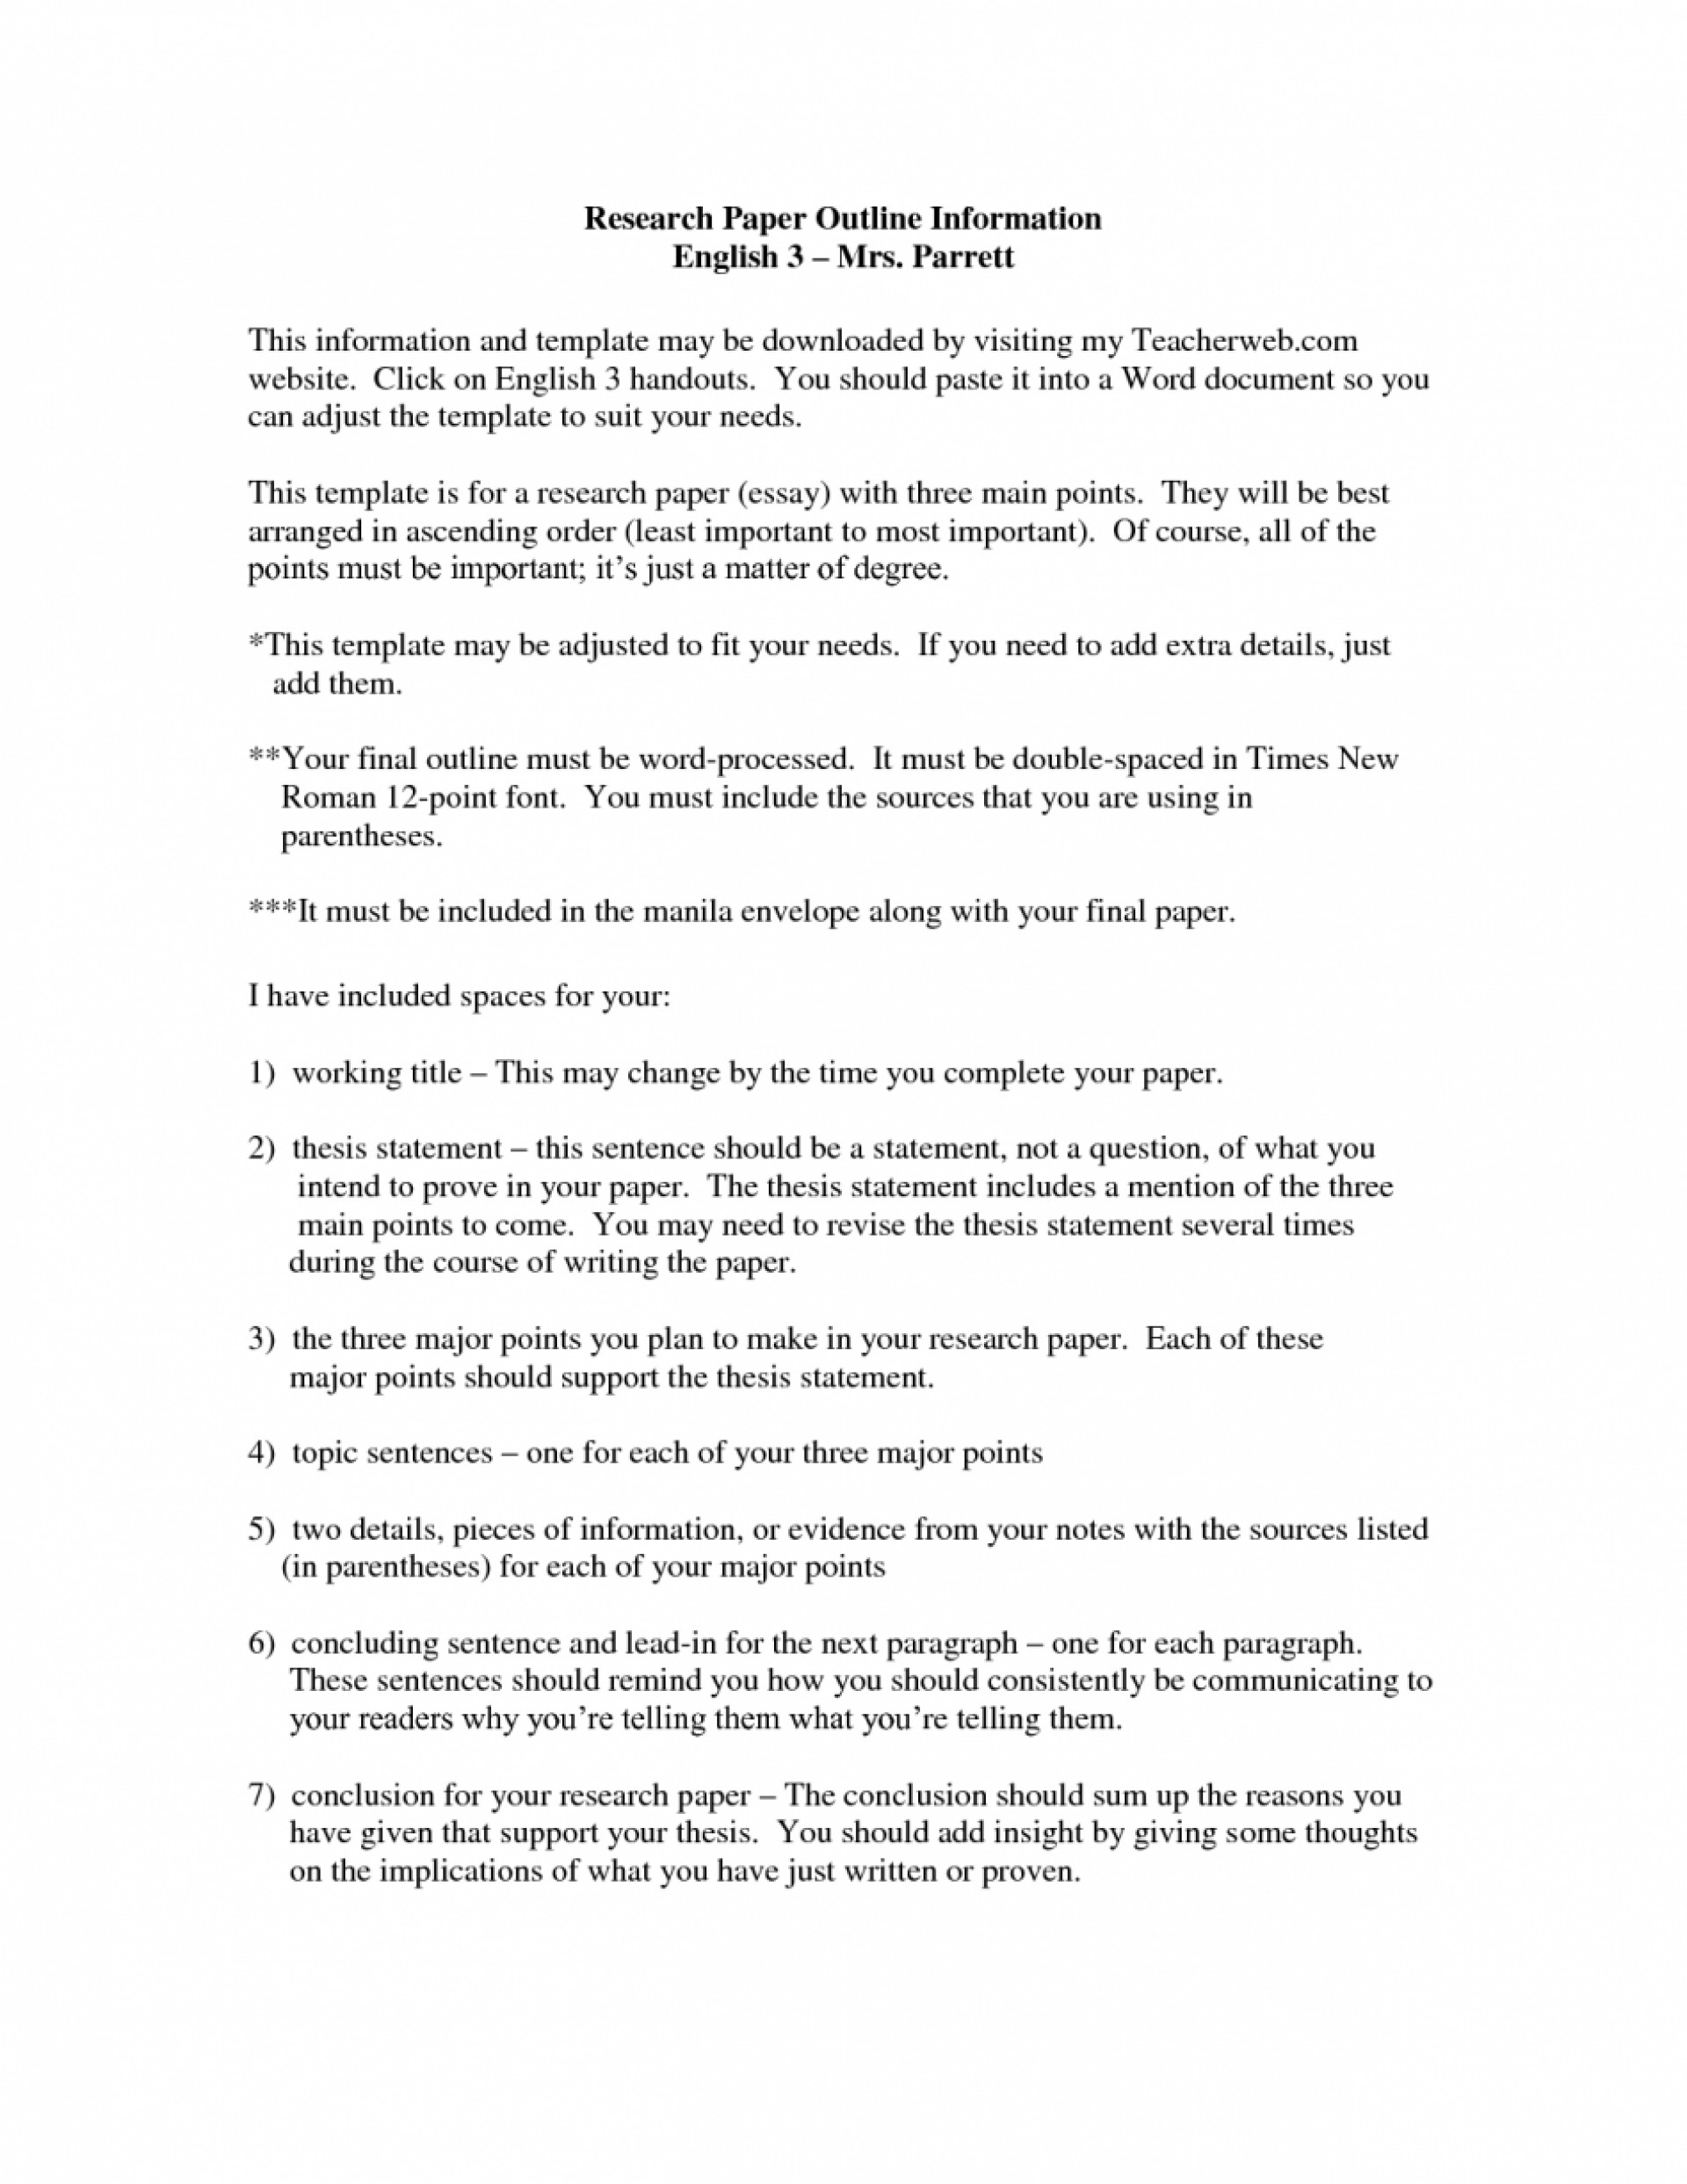 010 Research Paper Career Outline Formats For Papers Bunch